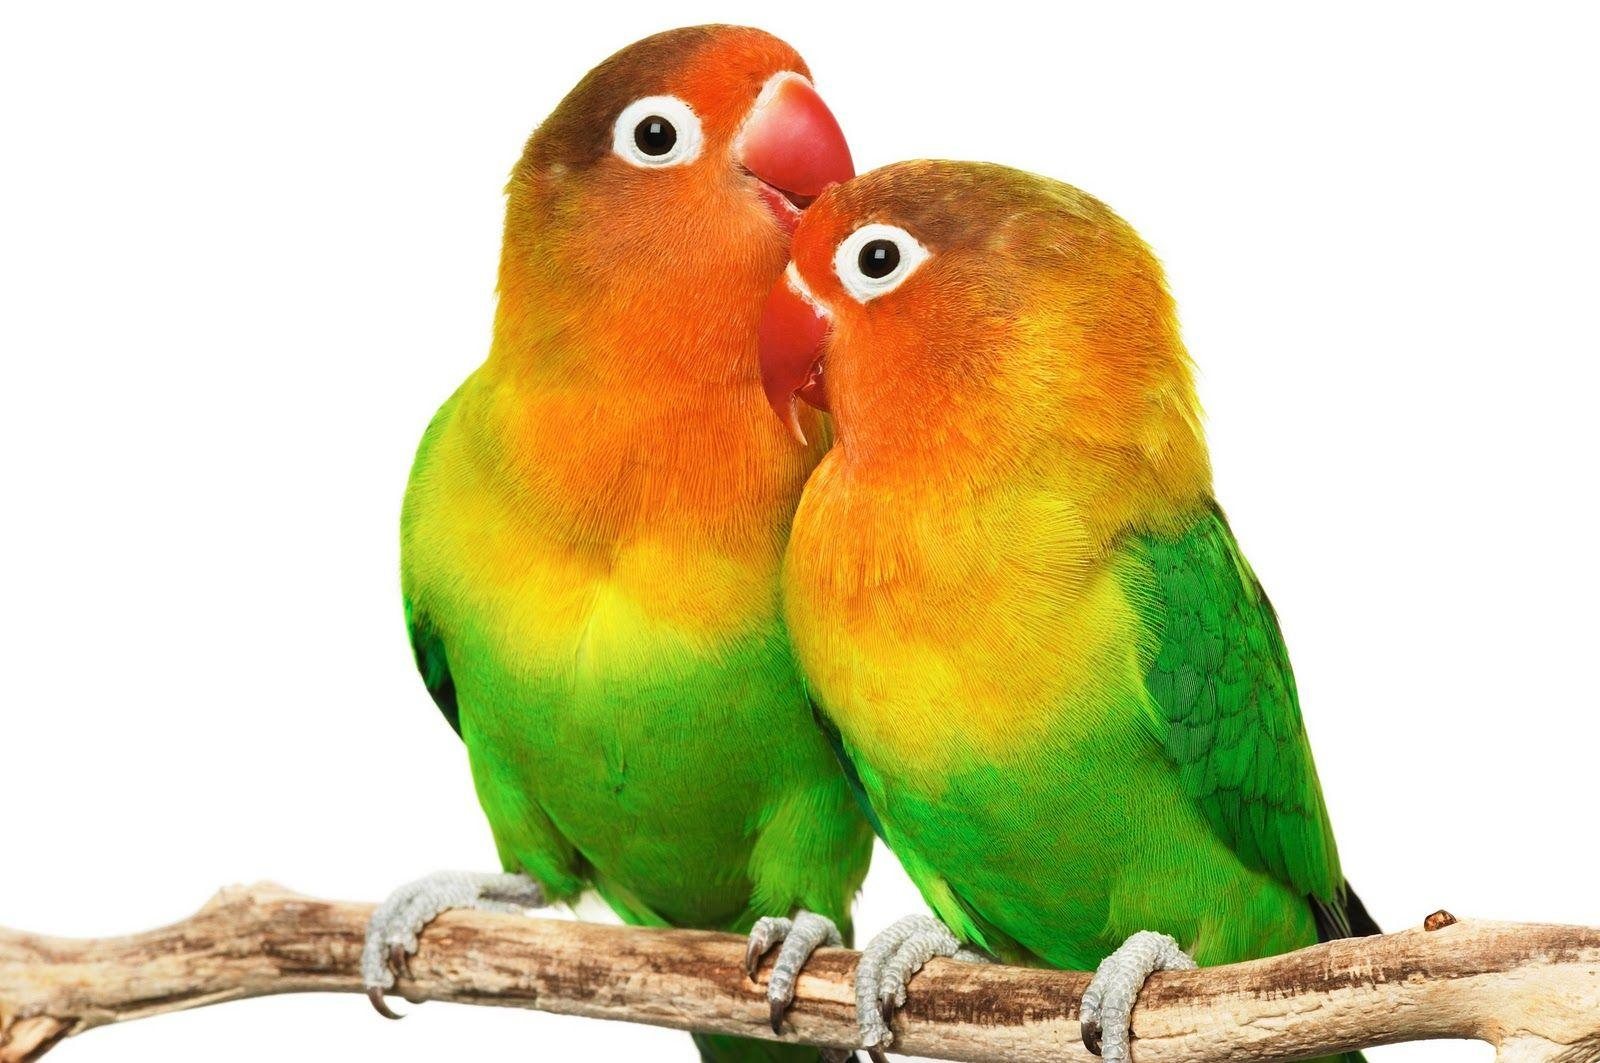 Love Birds Wallpaper Images : Love Bird Wallpapers - Wallpaper cave